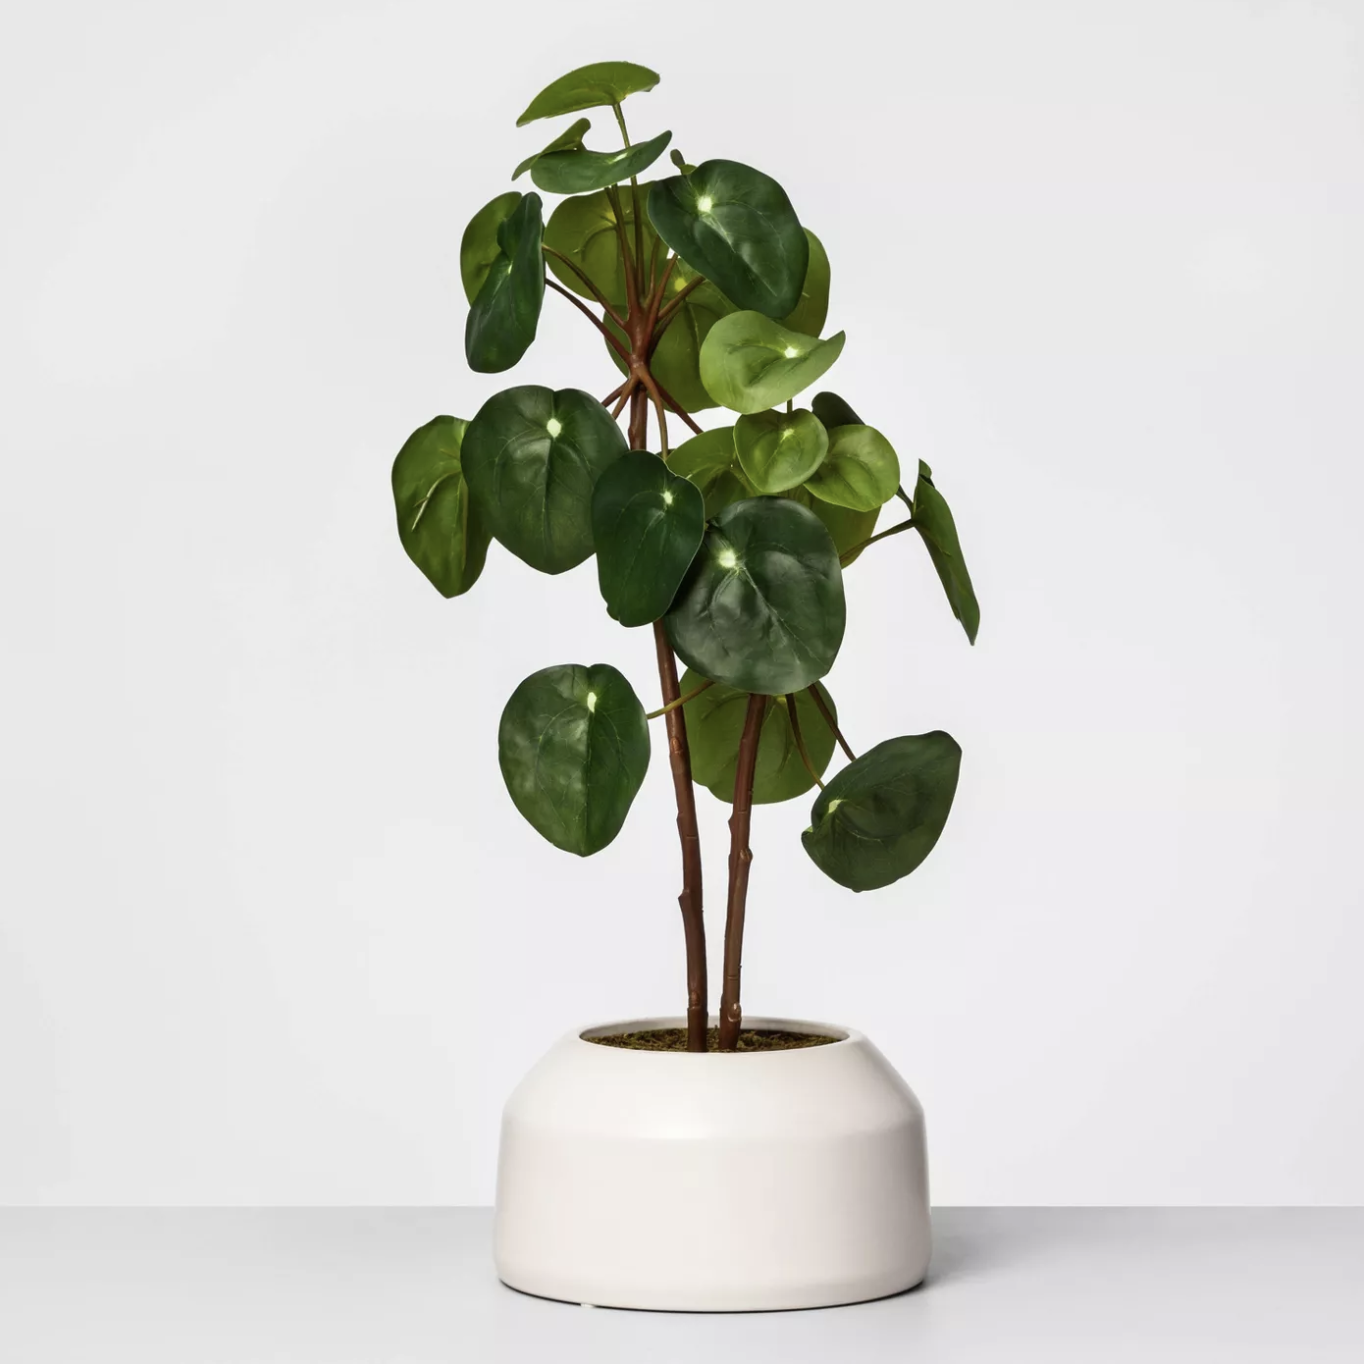 Artificial Potted Pilea Plant Green